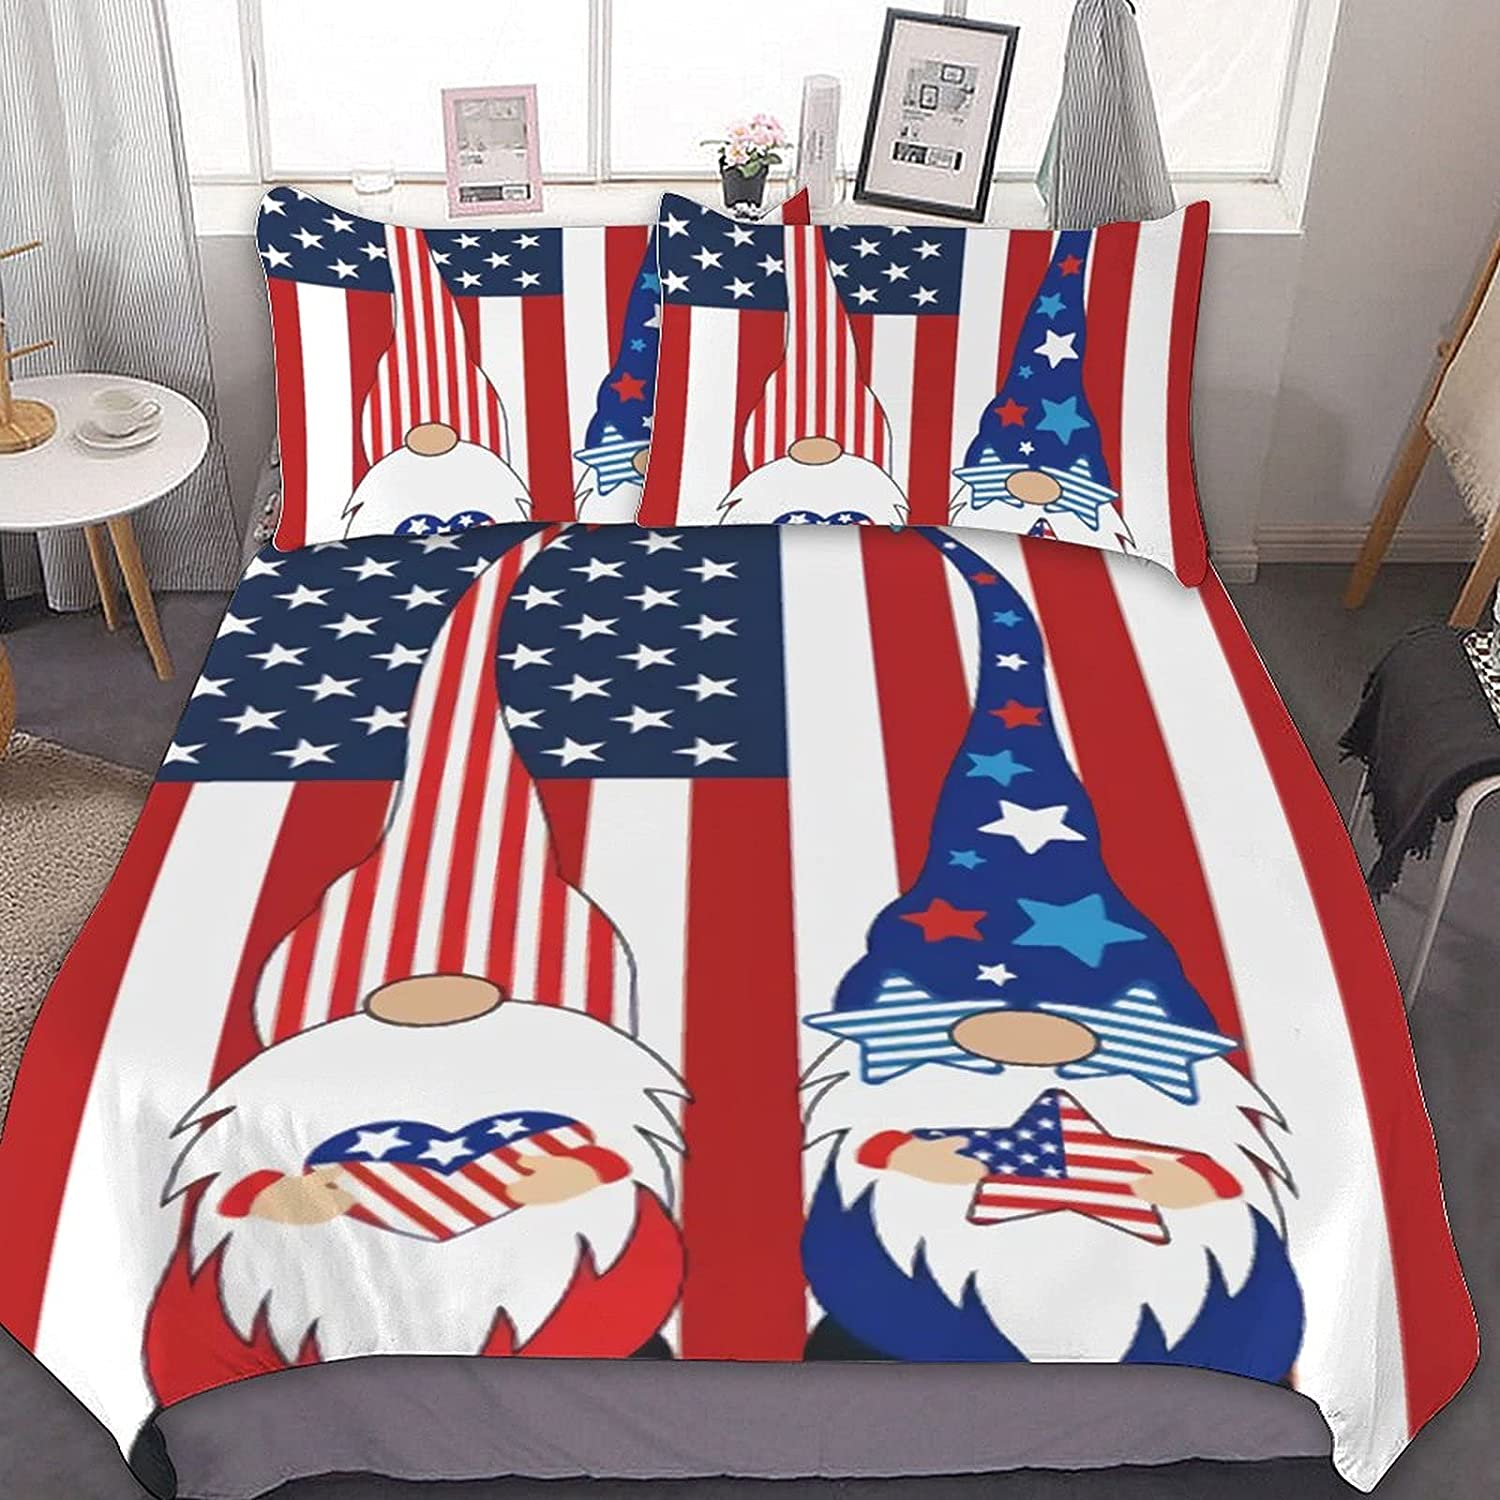 Merry Christmas All items in the store Cute Santa Charlotte Mall Bedding Bedspread Soft Comforter Set